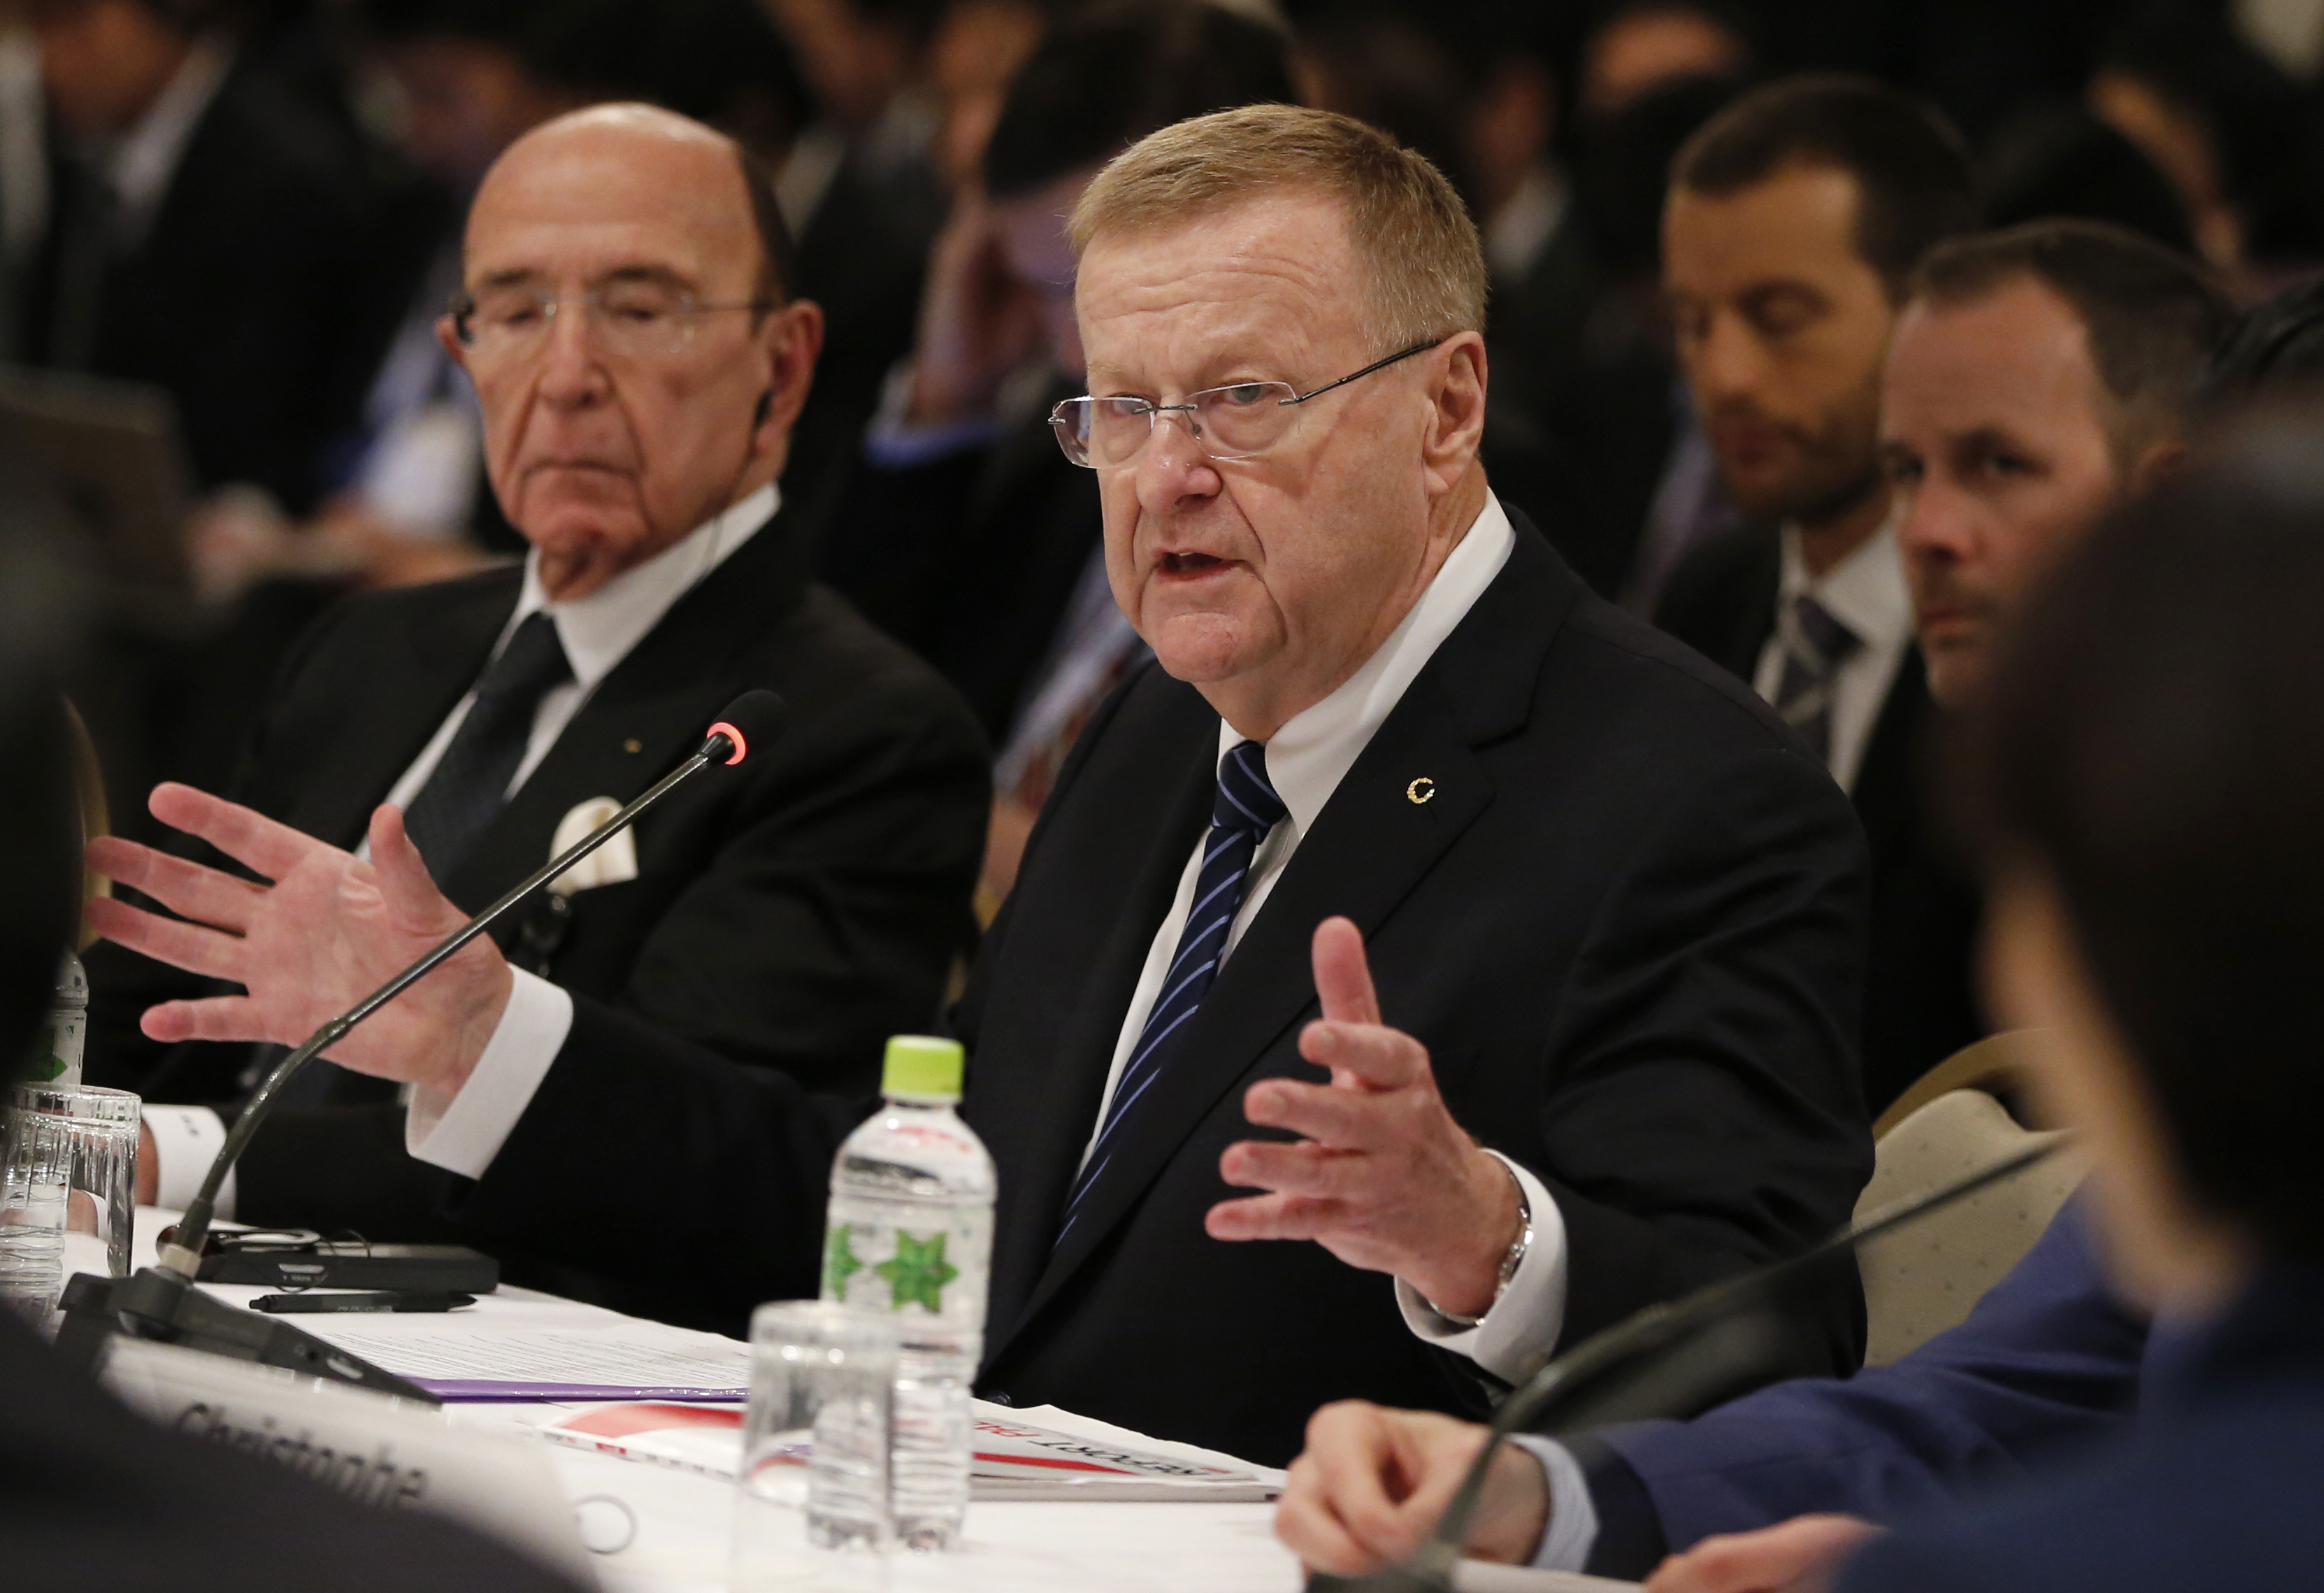 IOC Vice President John Coates, center, speaks at the IOC debriefing meeting in Tokyo, Tuesday, Nov. 29, 2016. Olympic officials have agreed to keep the rowing and swimming venues at their planned sites in Tokyo for the 2020 Games. A decision on the volle